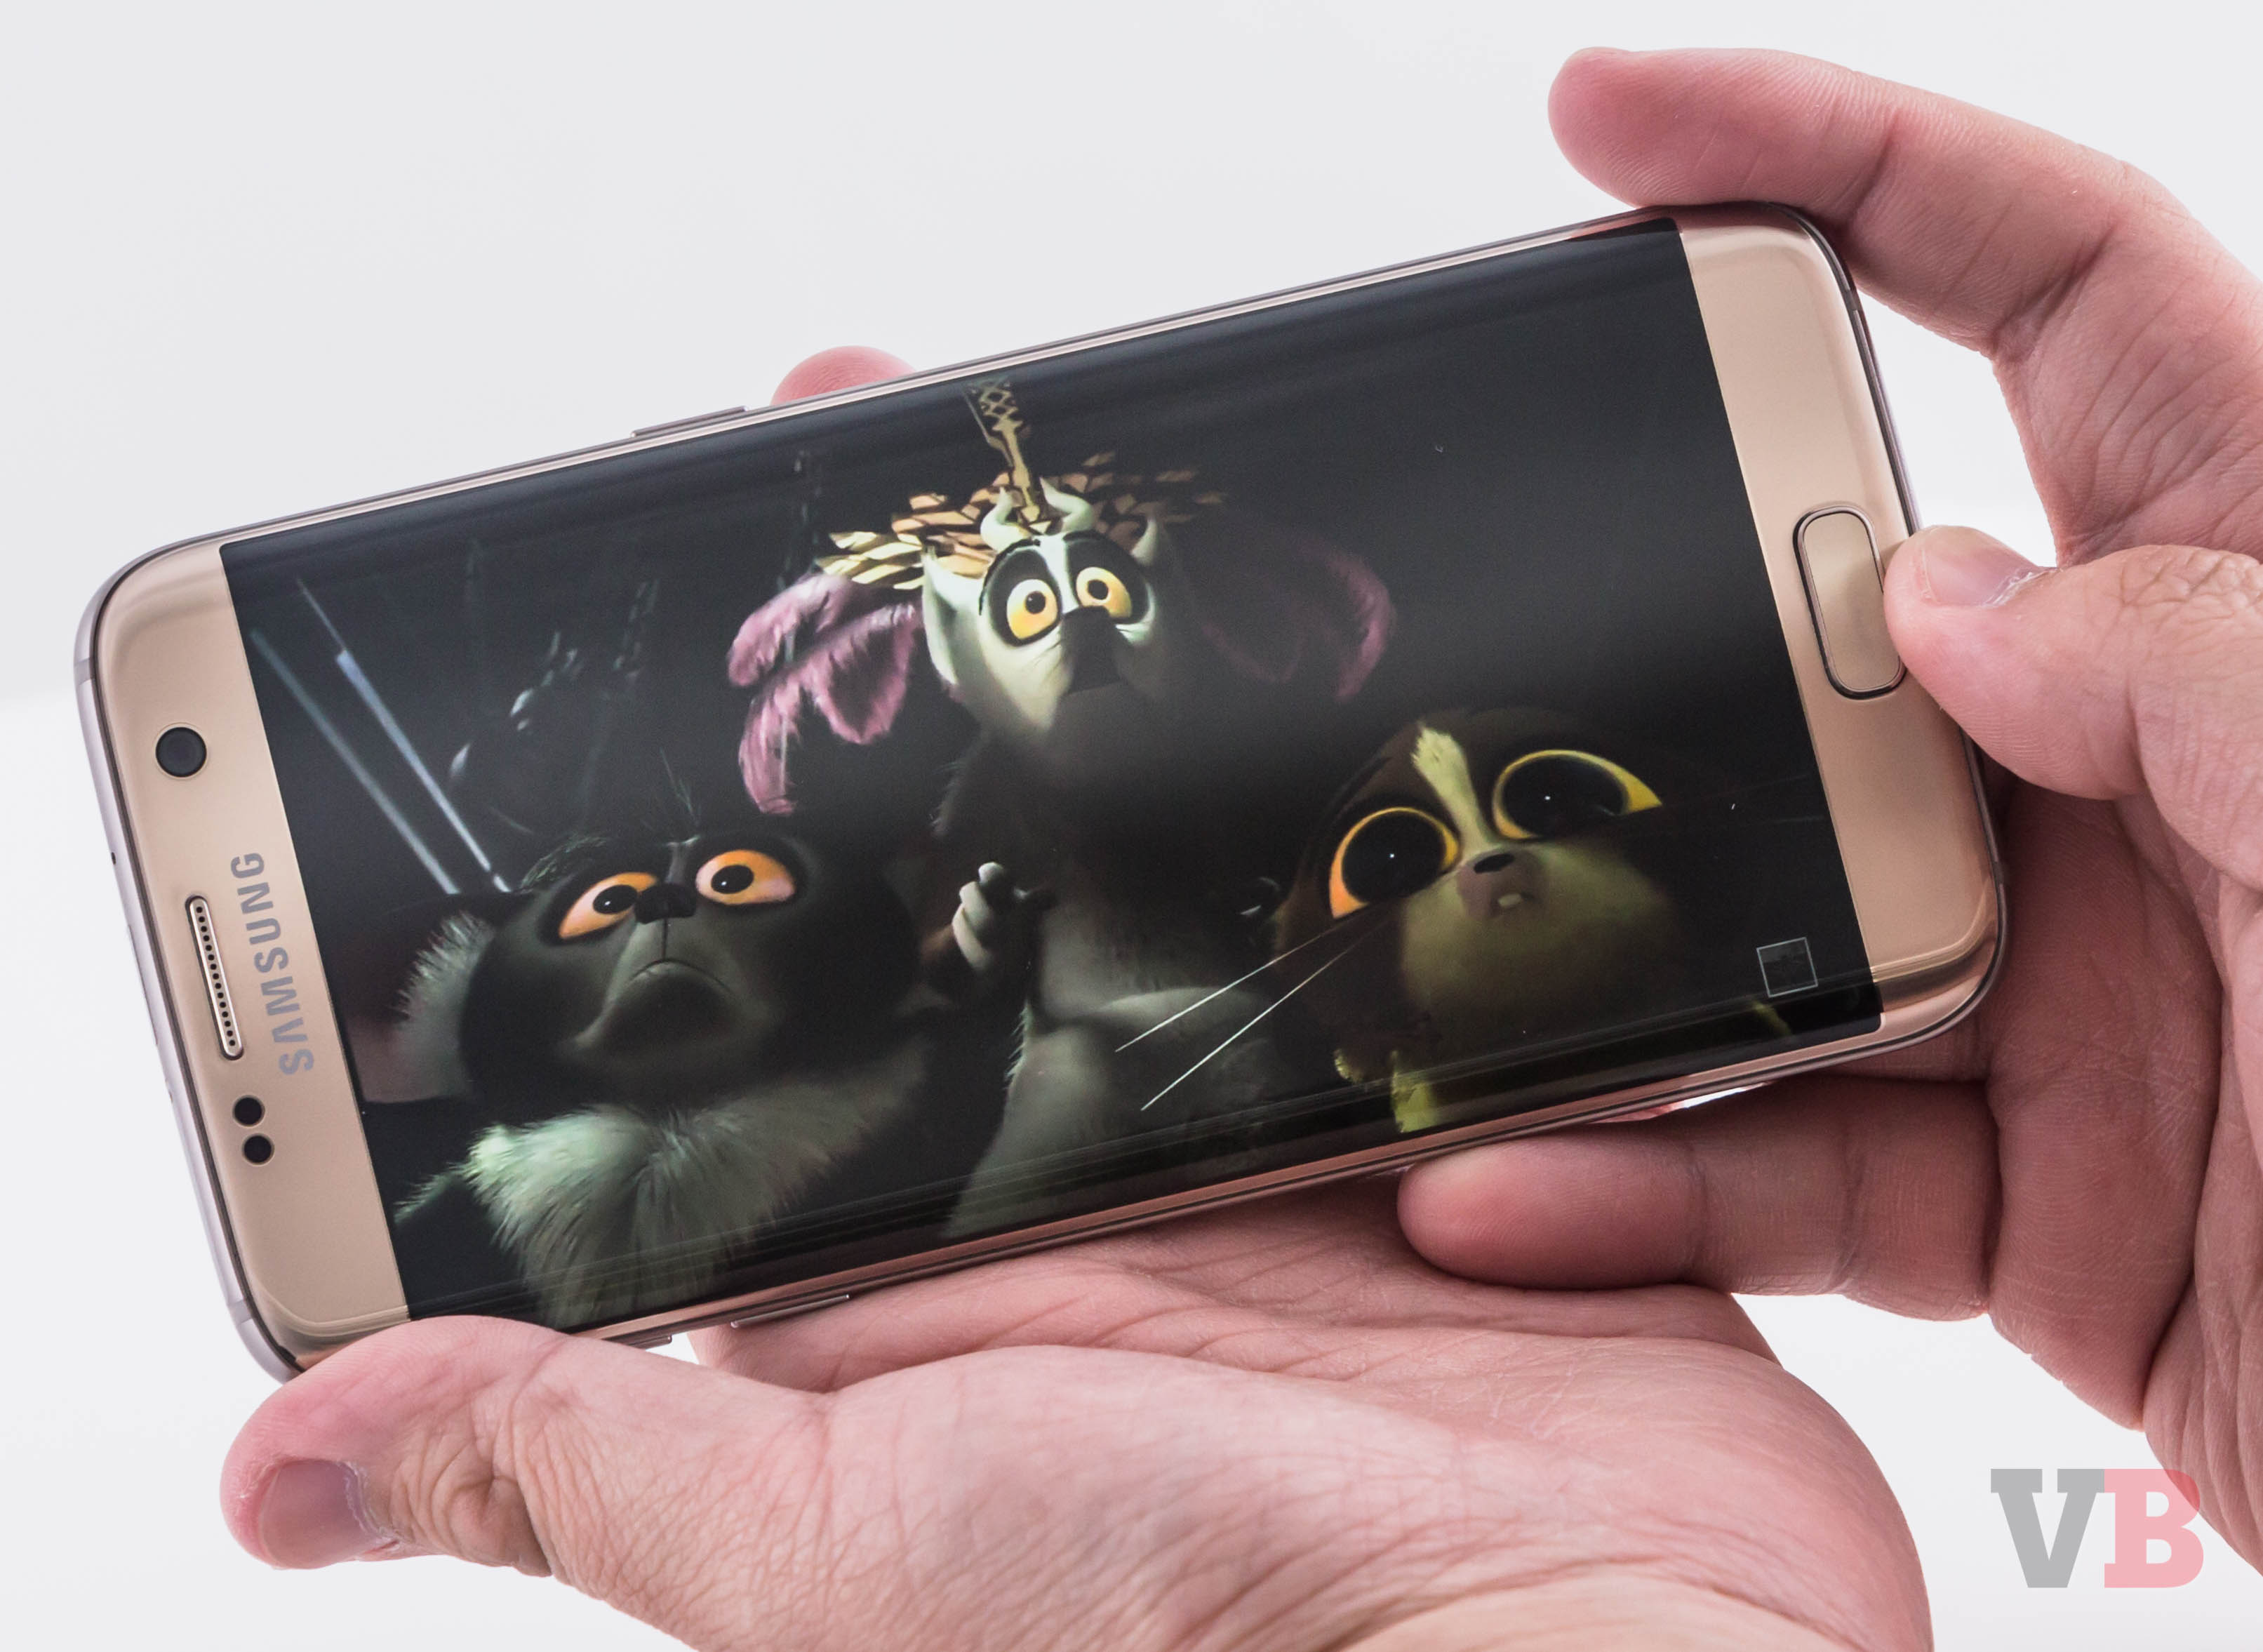 how to put movie on galaxy s7 edge